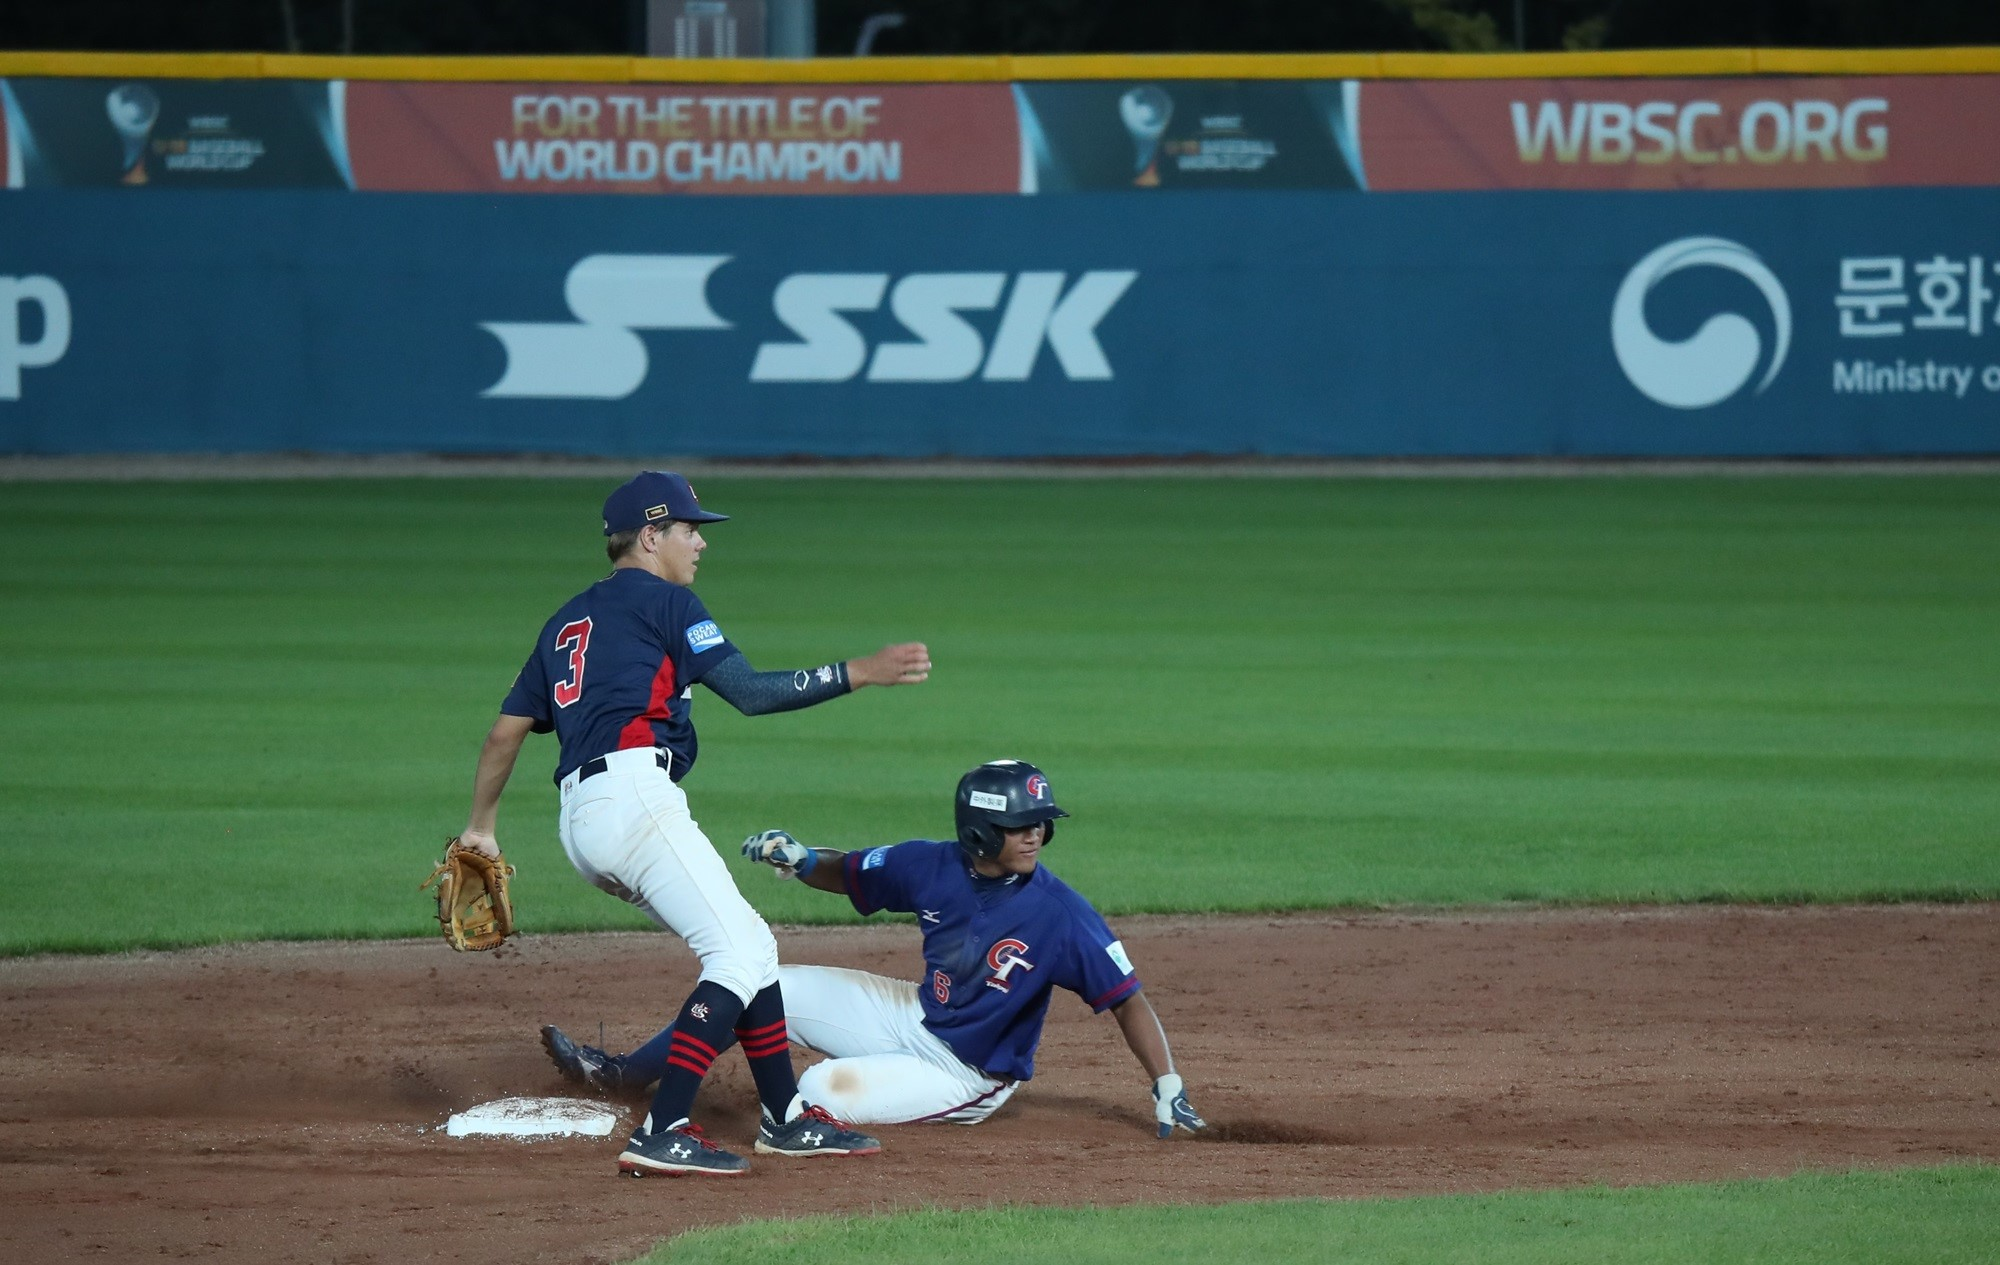 Shortstop Milan Tolentino fields second base for the USA